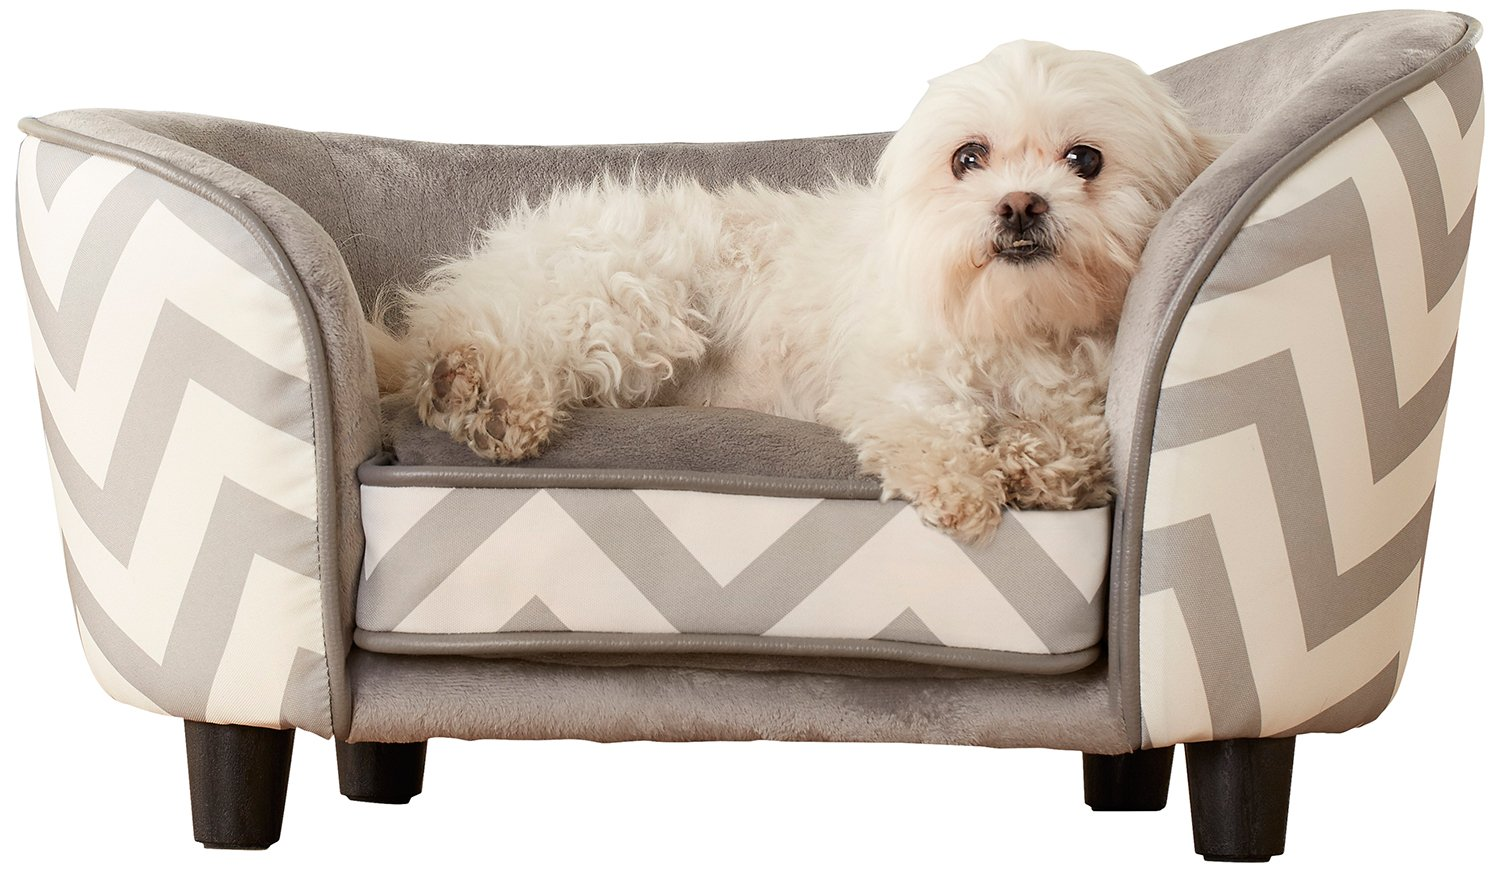 Enchanted Home Pet Snuggle Pet Sofa Bed Chevron